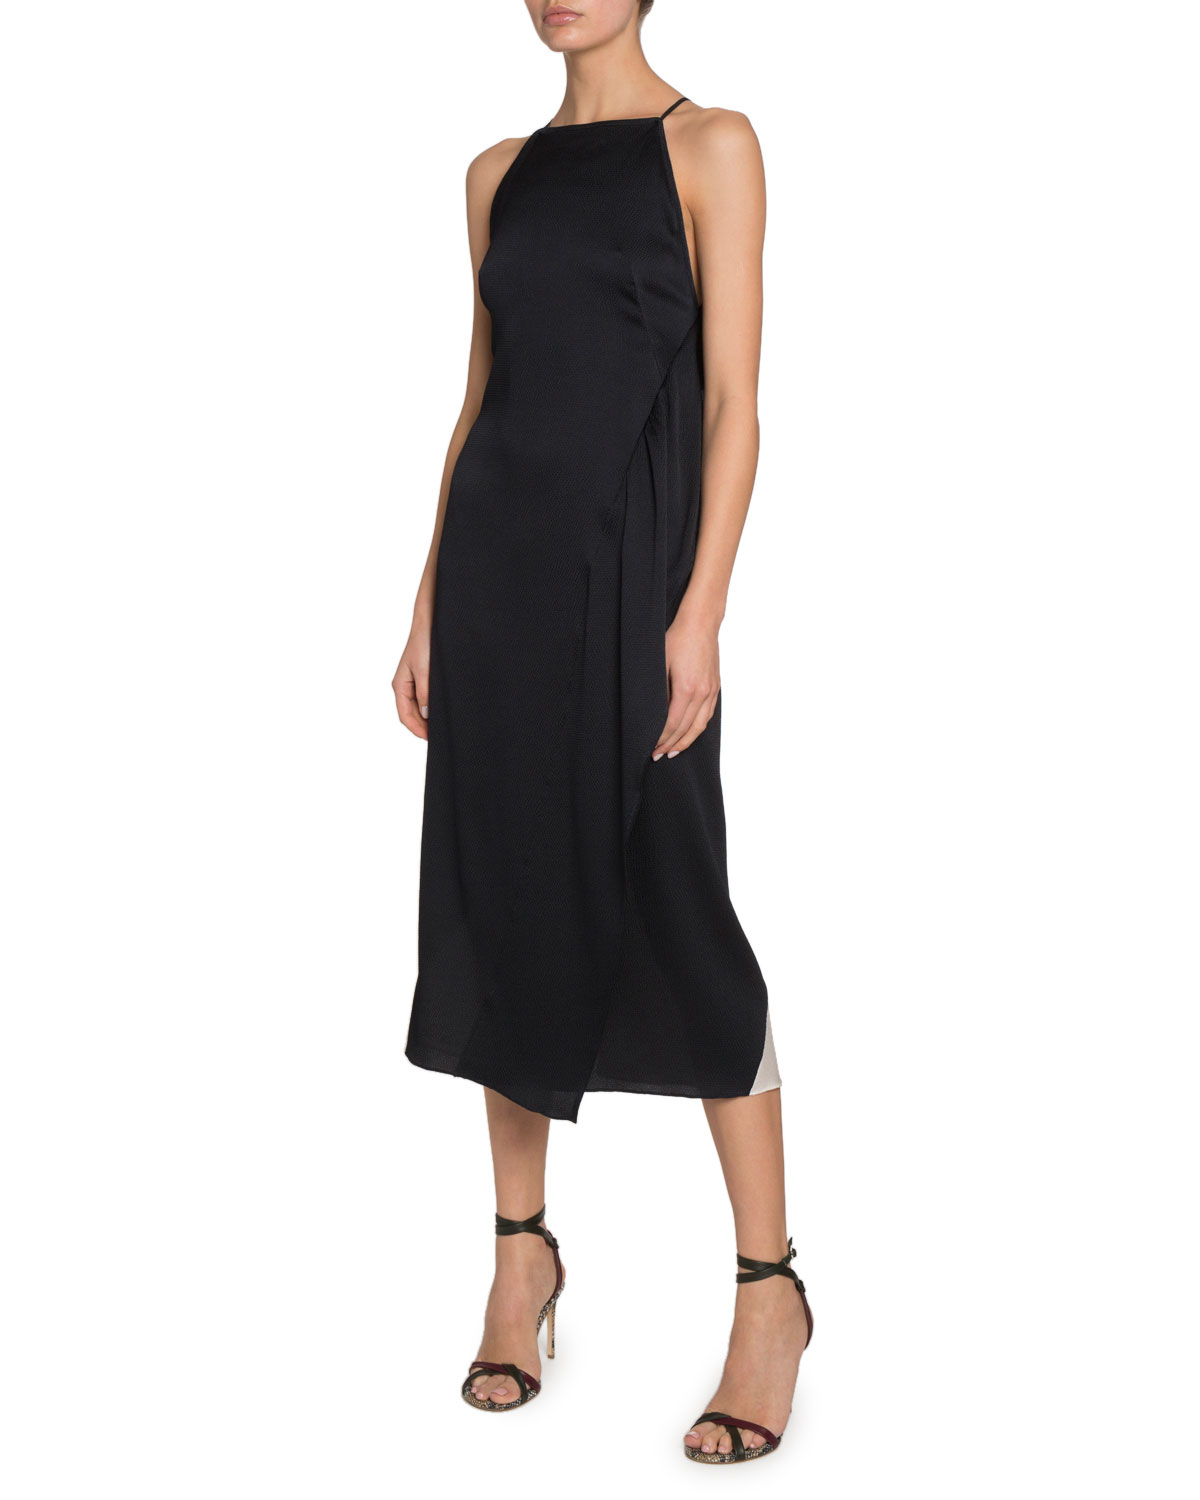 Victoria Beckham Dresses SILK SEERSUCKER ASYMMETRIC DRESS